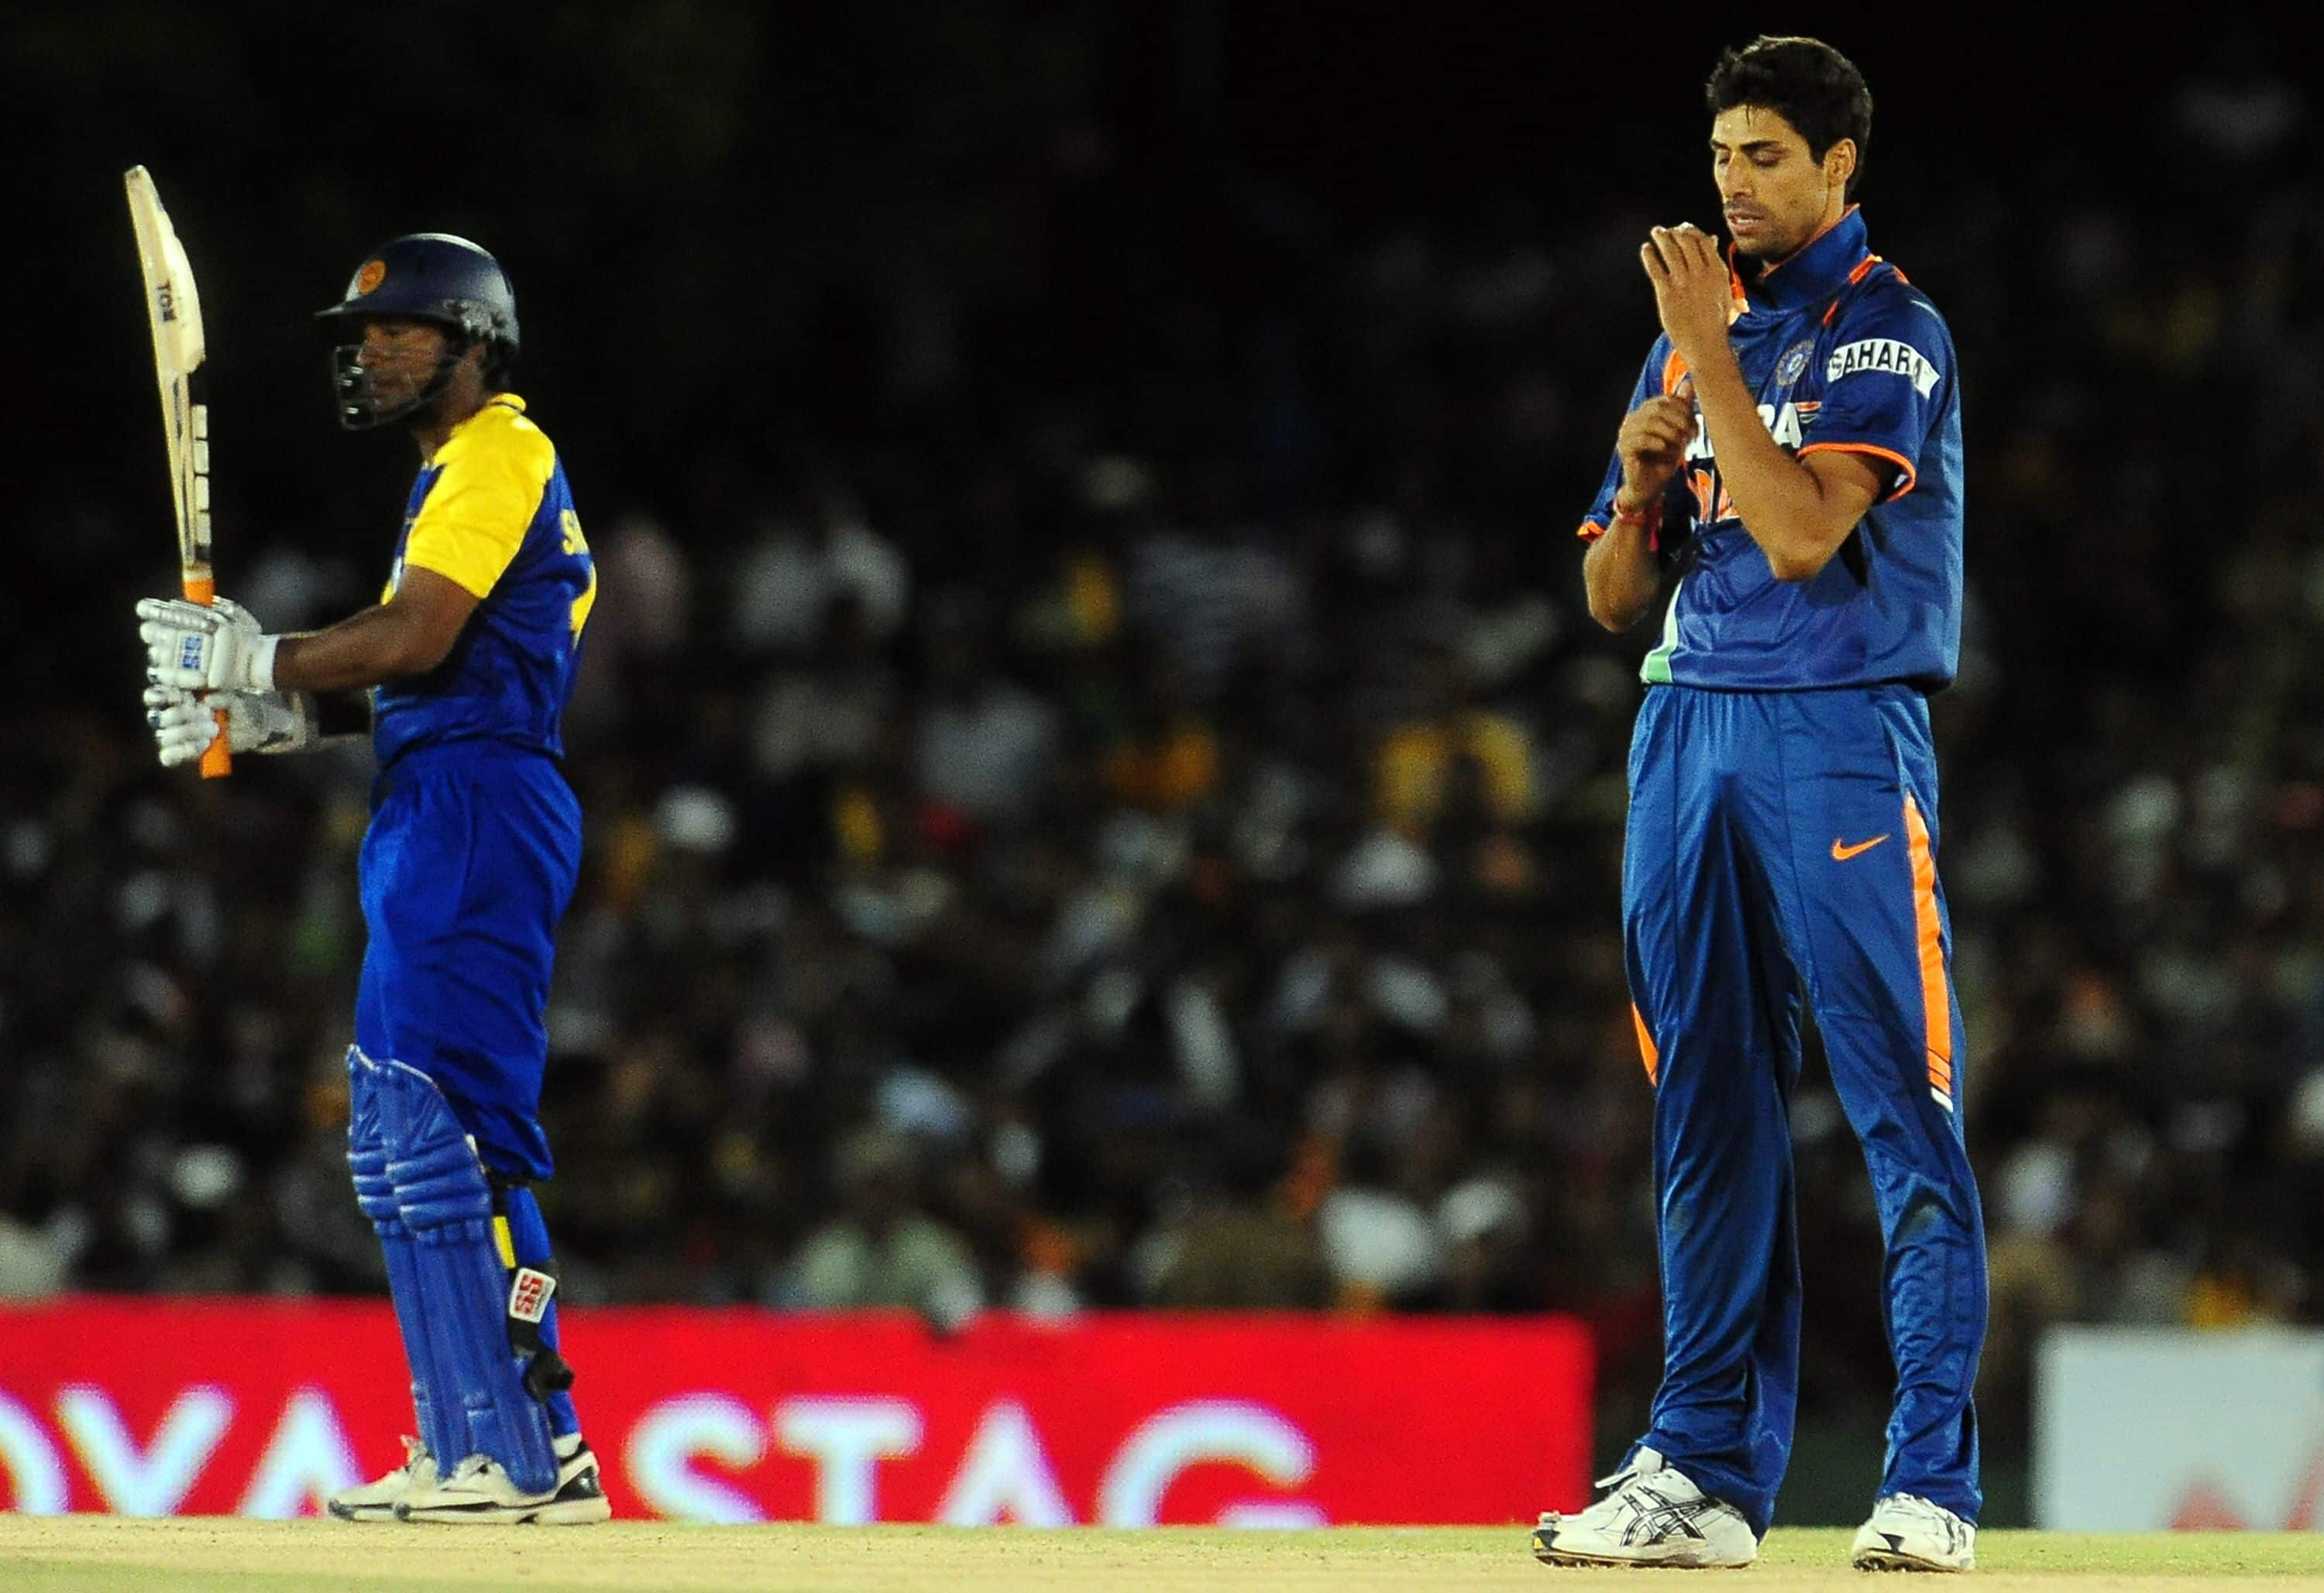 Ashish Nehra claimed 4/40 to bowl India to an 81-run win in 2010.